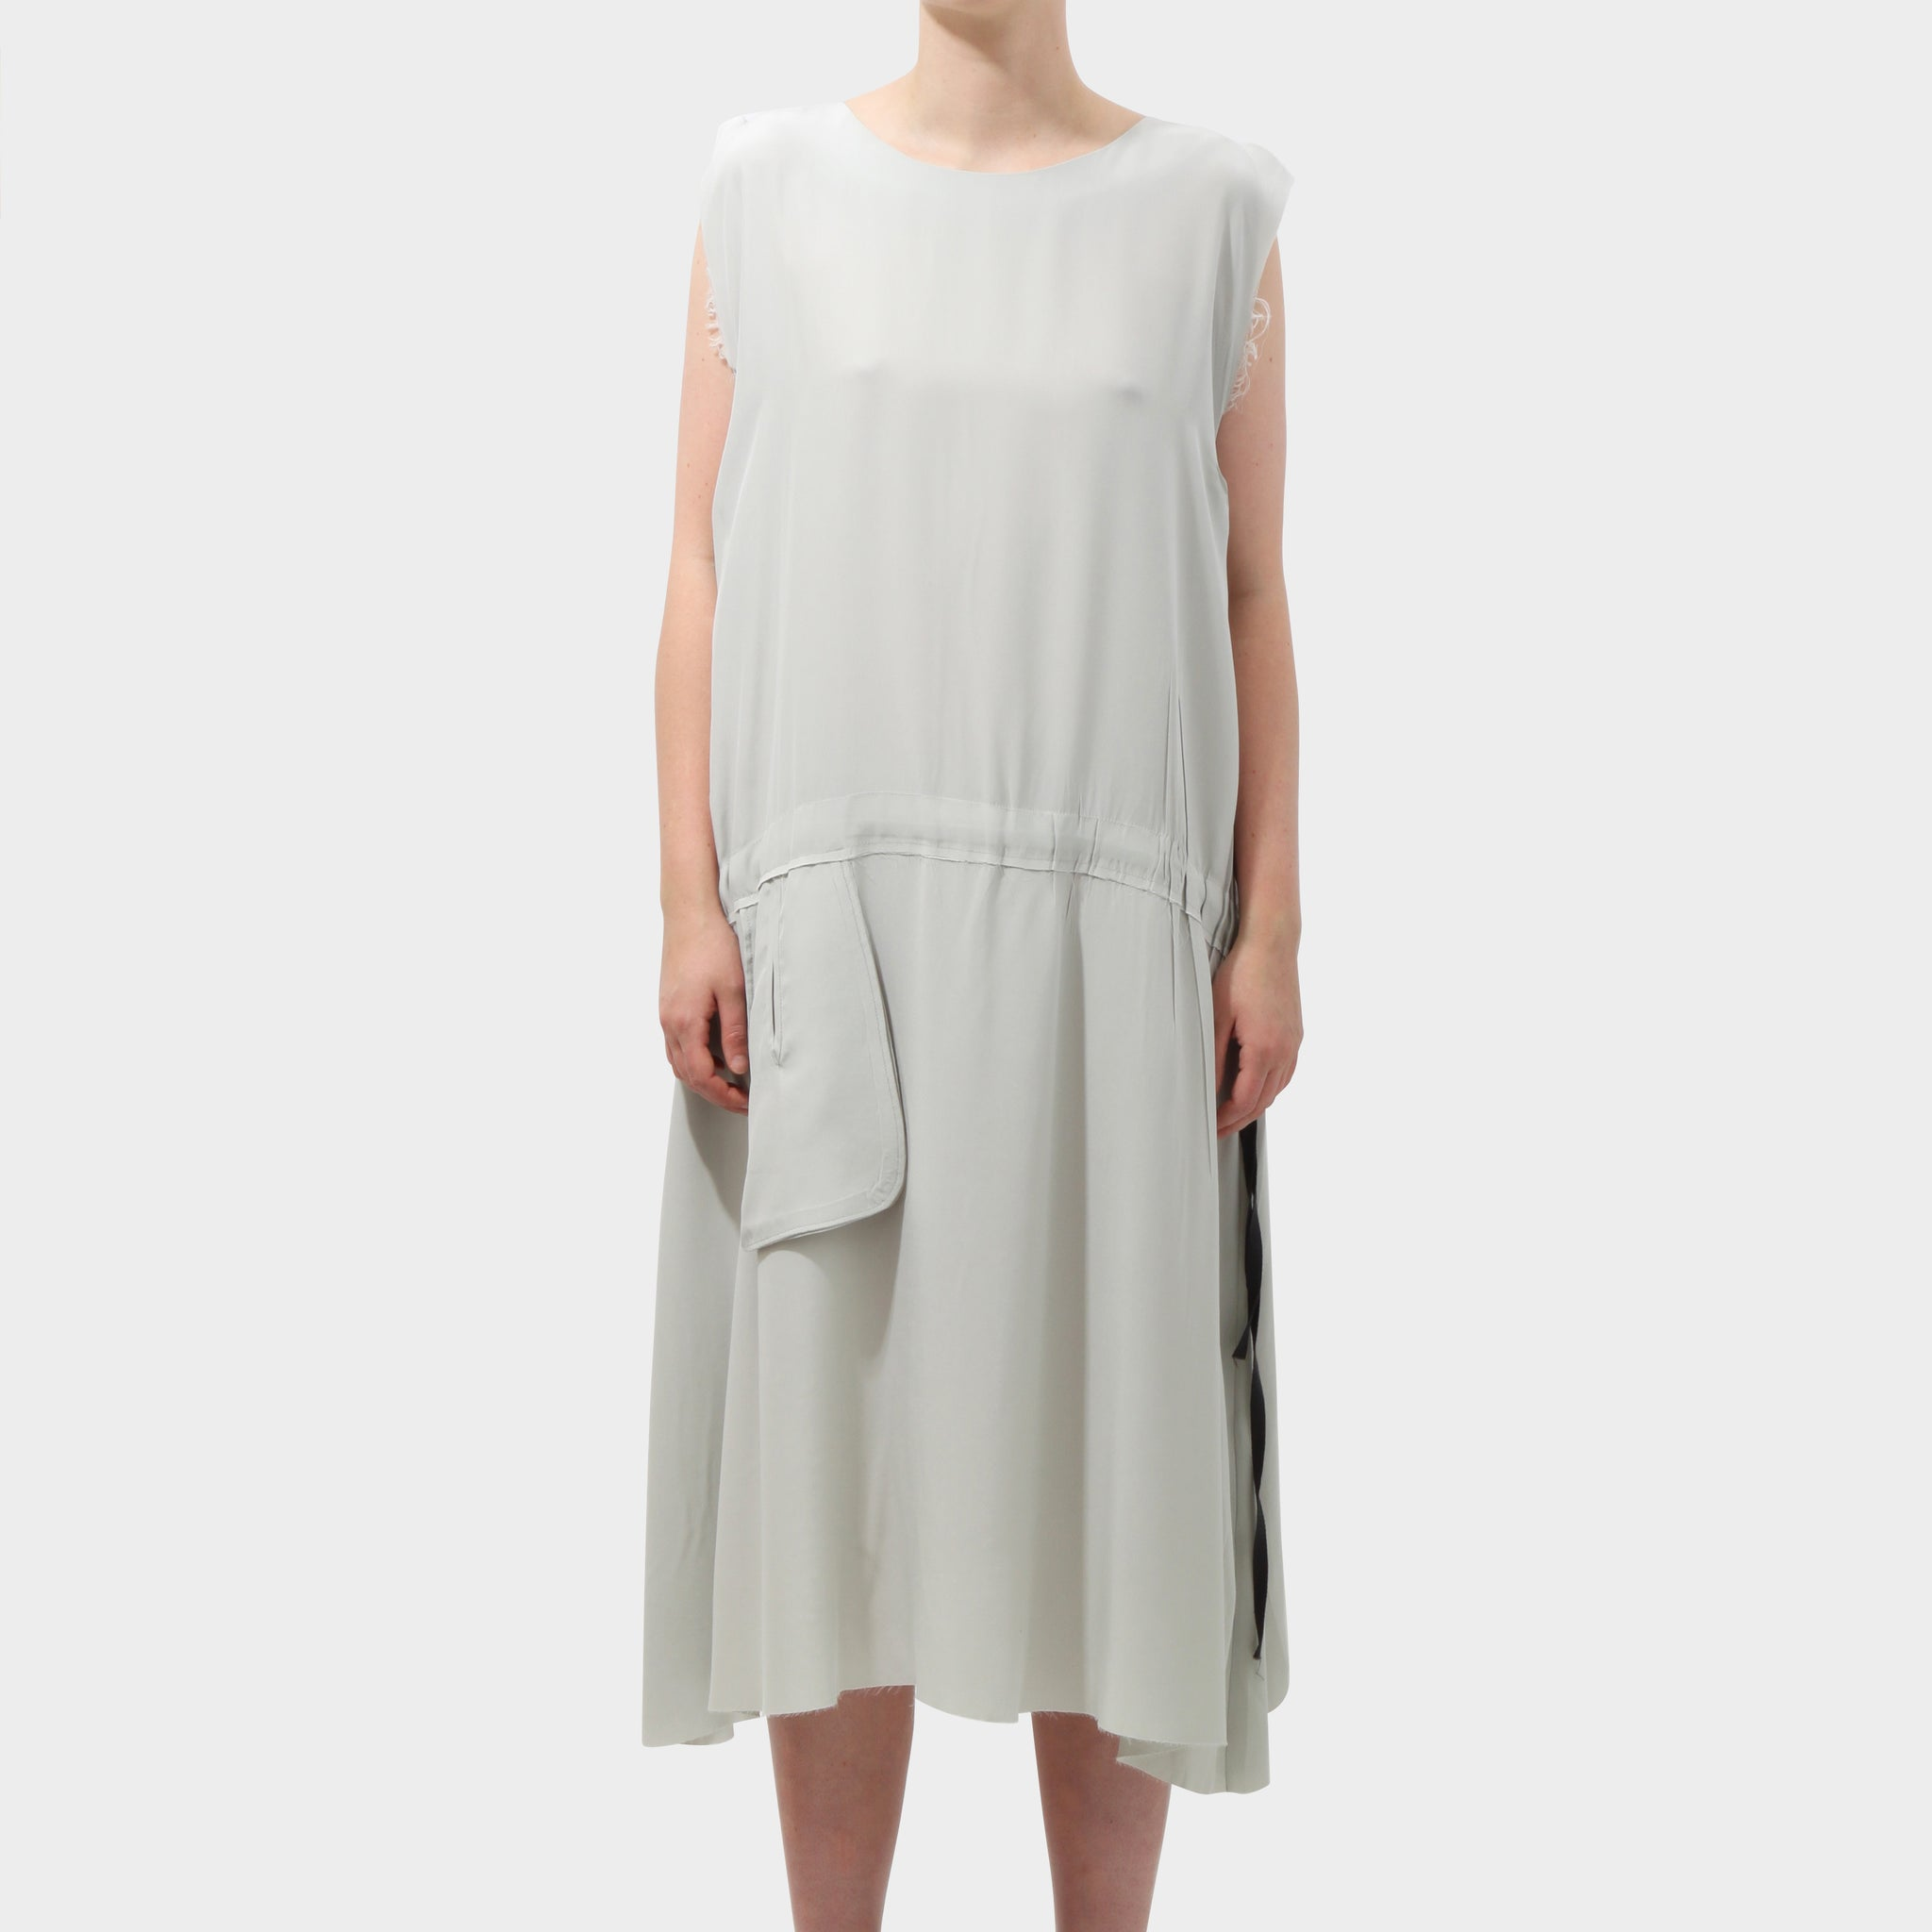 P.R. PATTERSON DRAWSTRING DRESS